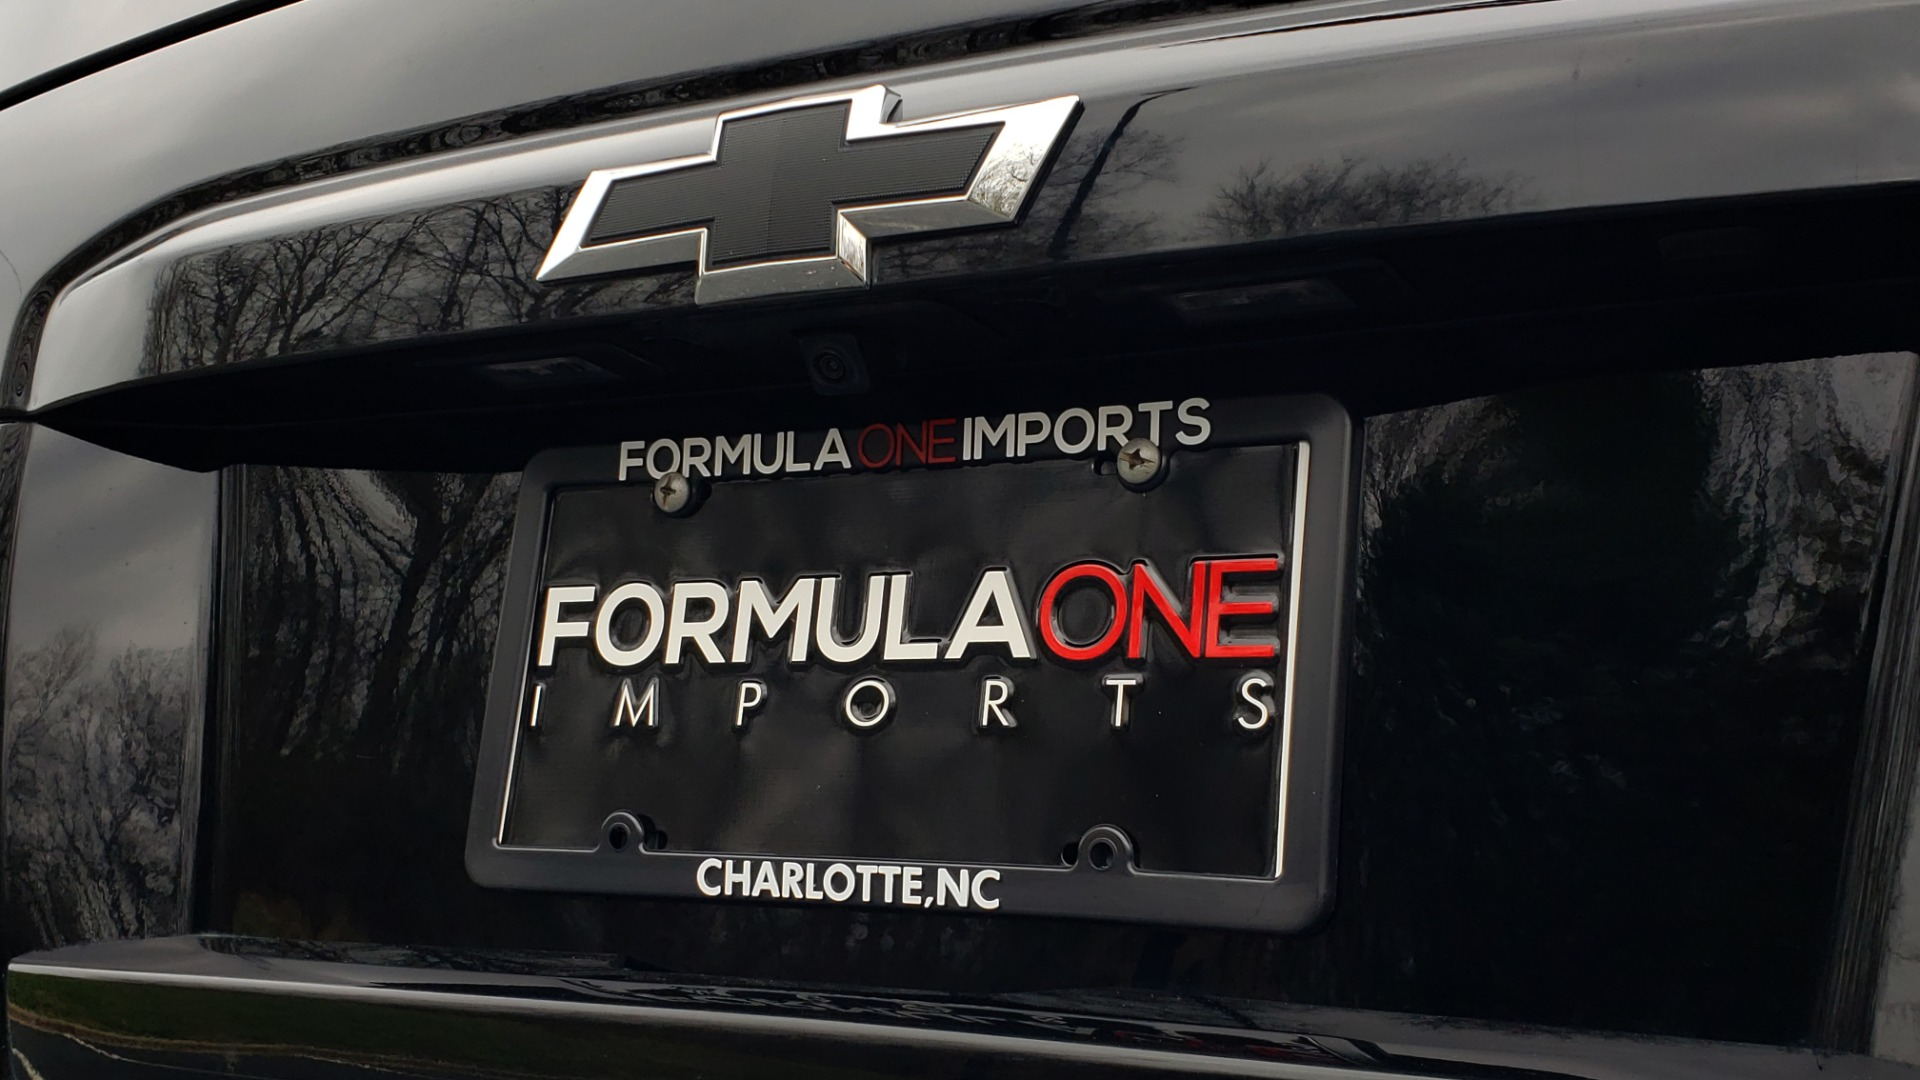 Used 2017 Chevrolet TAHOE PREMIER 4WD / NAV / SNRF / ENTERT / REARVIEW / 3-ROW for sale Sold at Formula Imports in Charlotte NC 28227 31